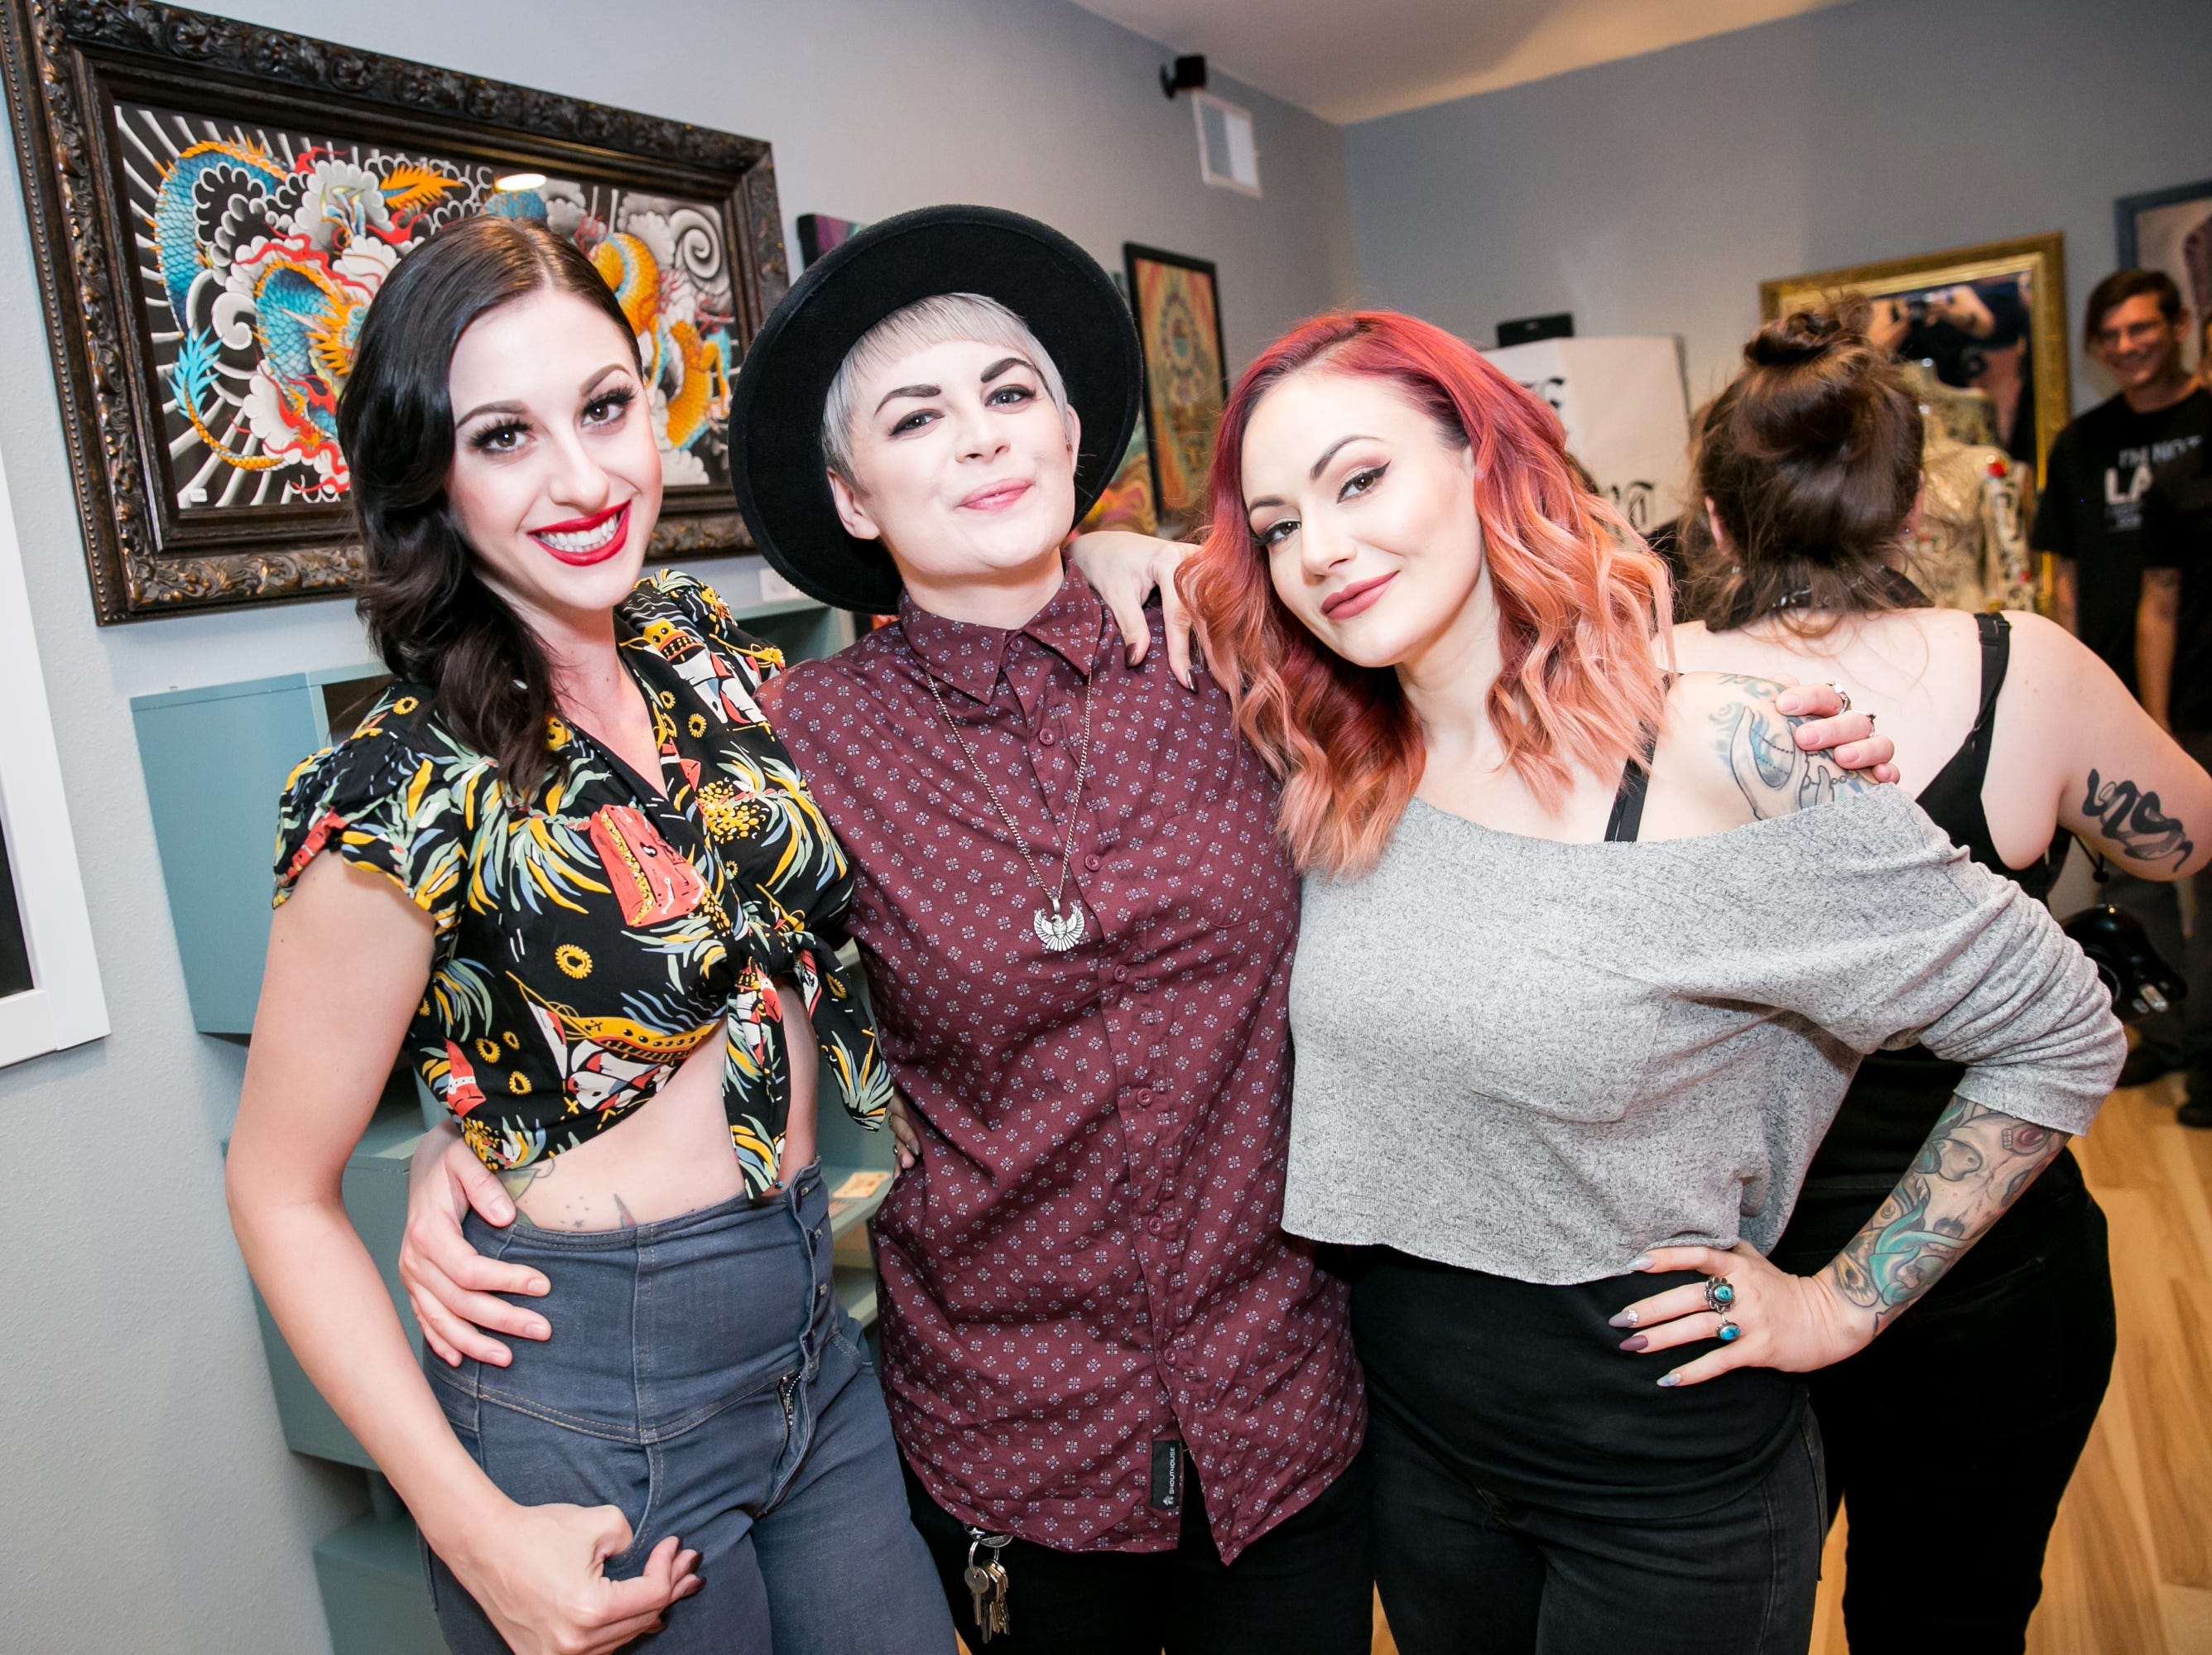 These pals looked fierce at The Heart of Town tattoo art show at Lighten Up Laser during First Friday on October 5, 2018.